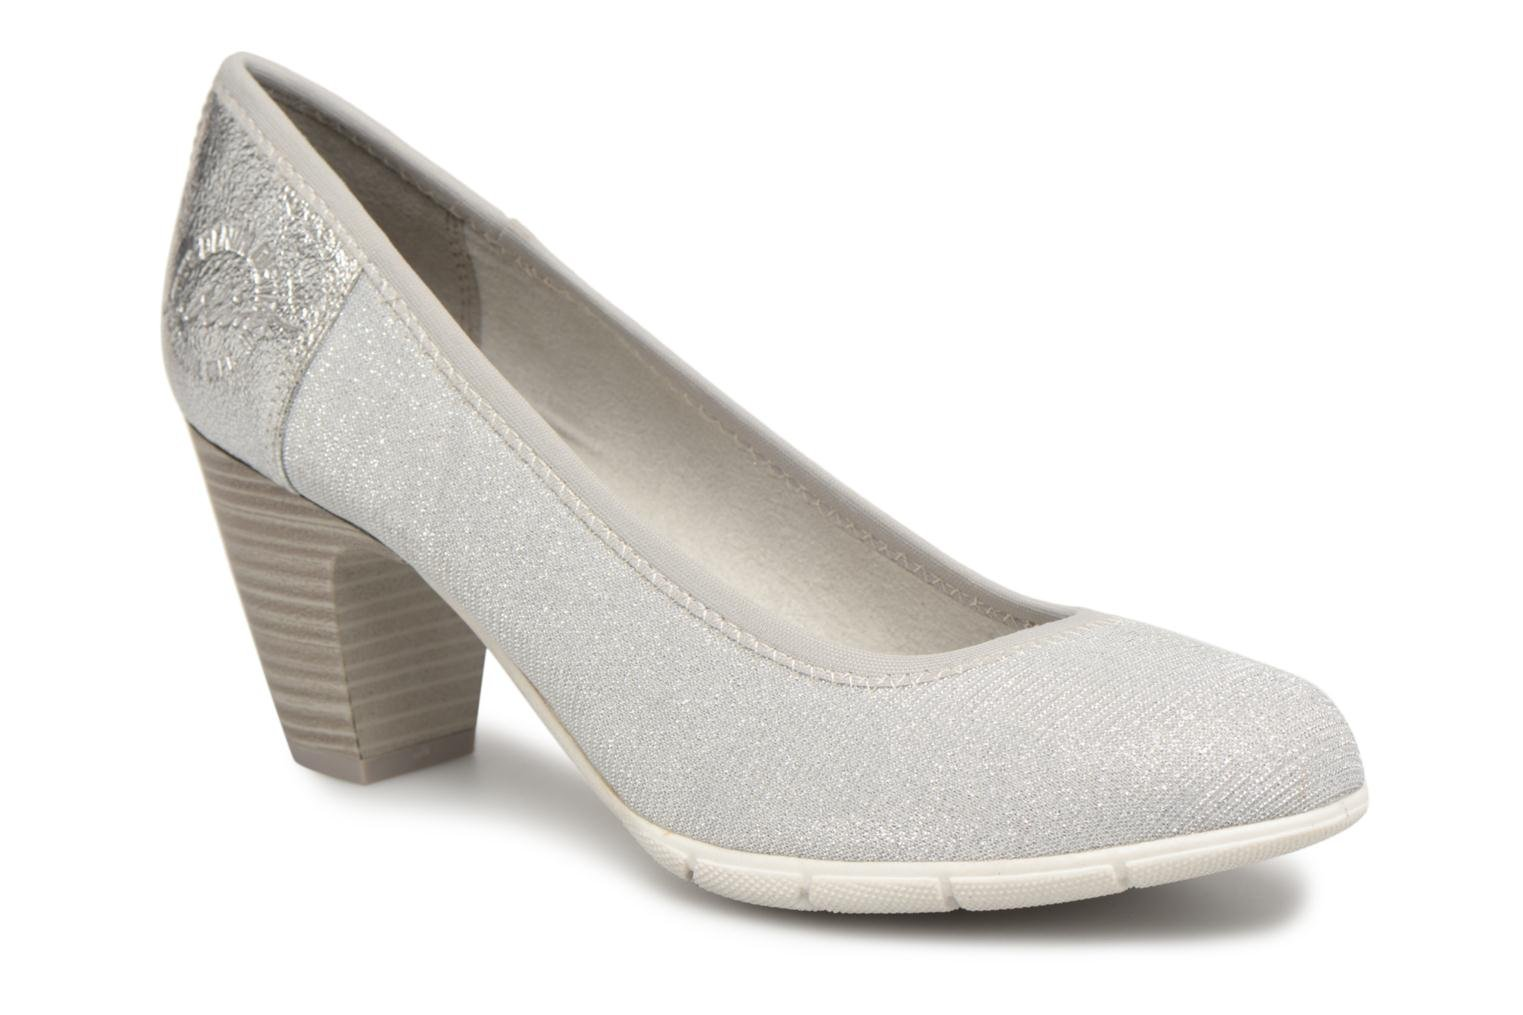 Marques Chaussure femme S.Oliver femme Jirat Silver glam